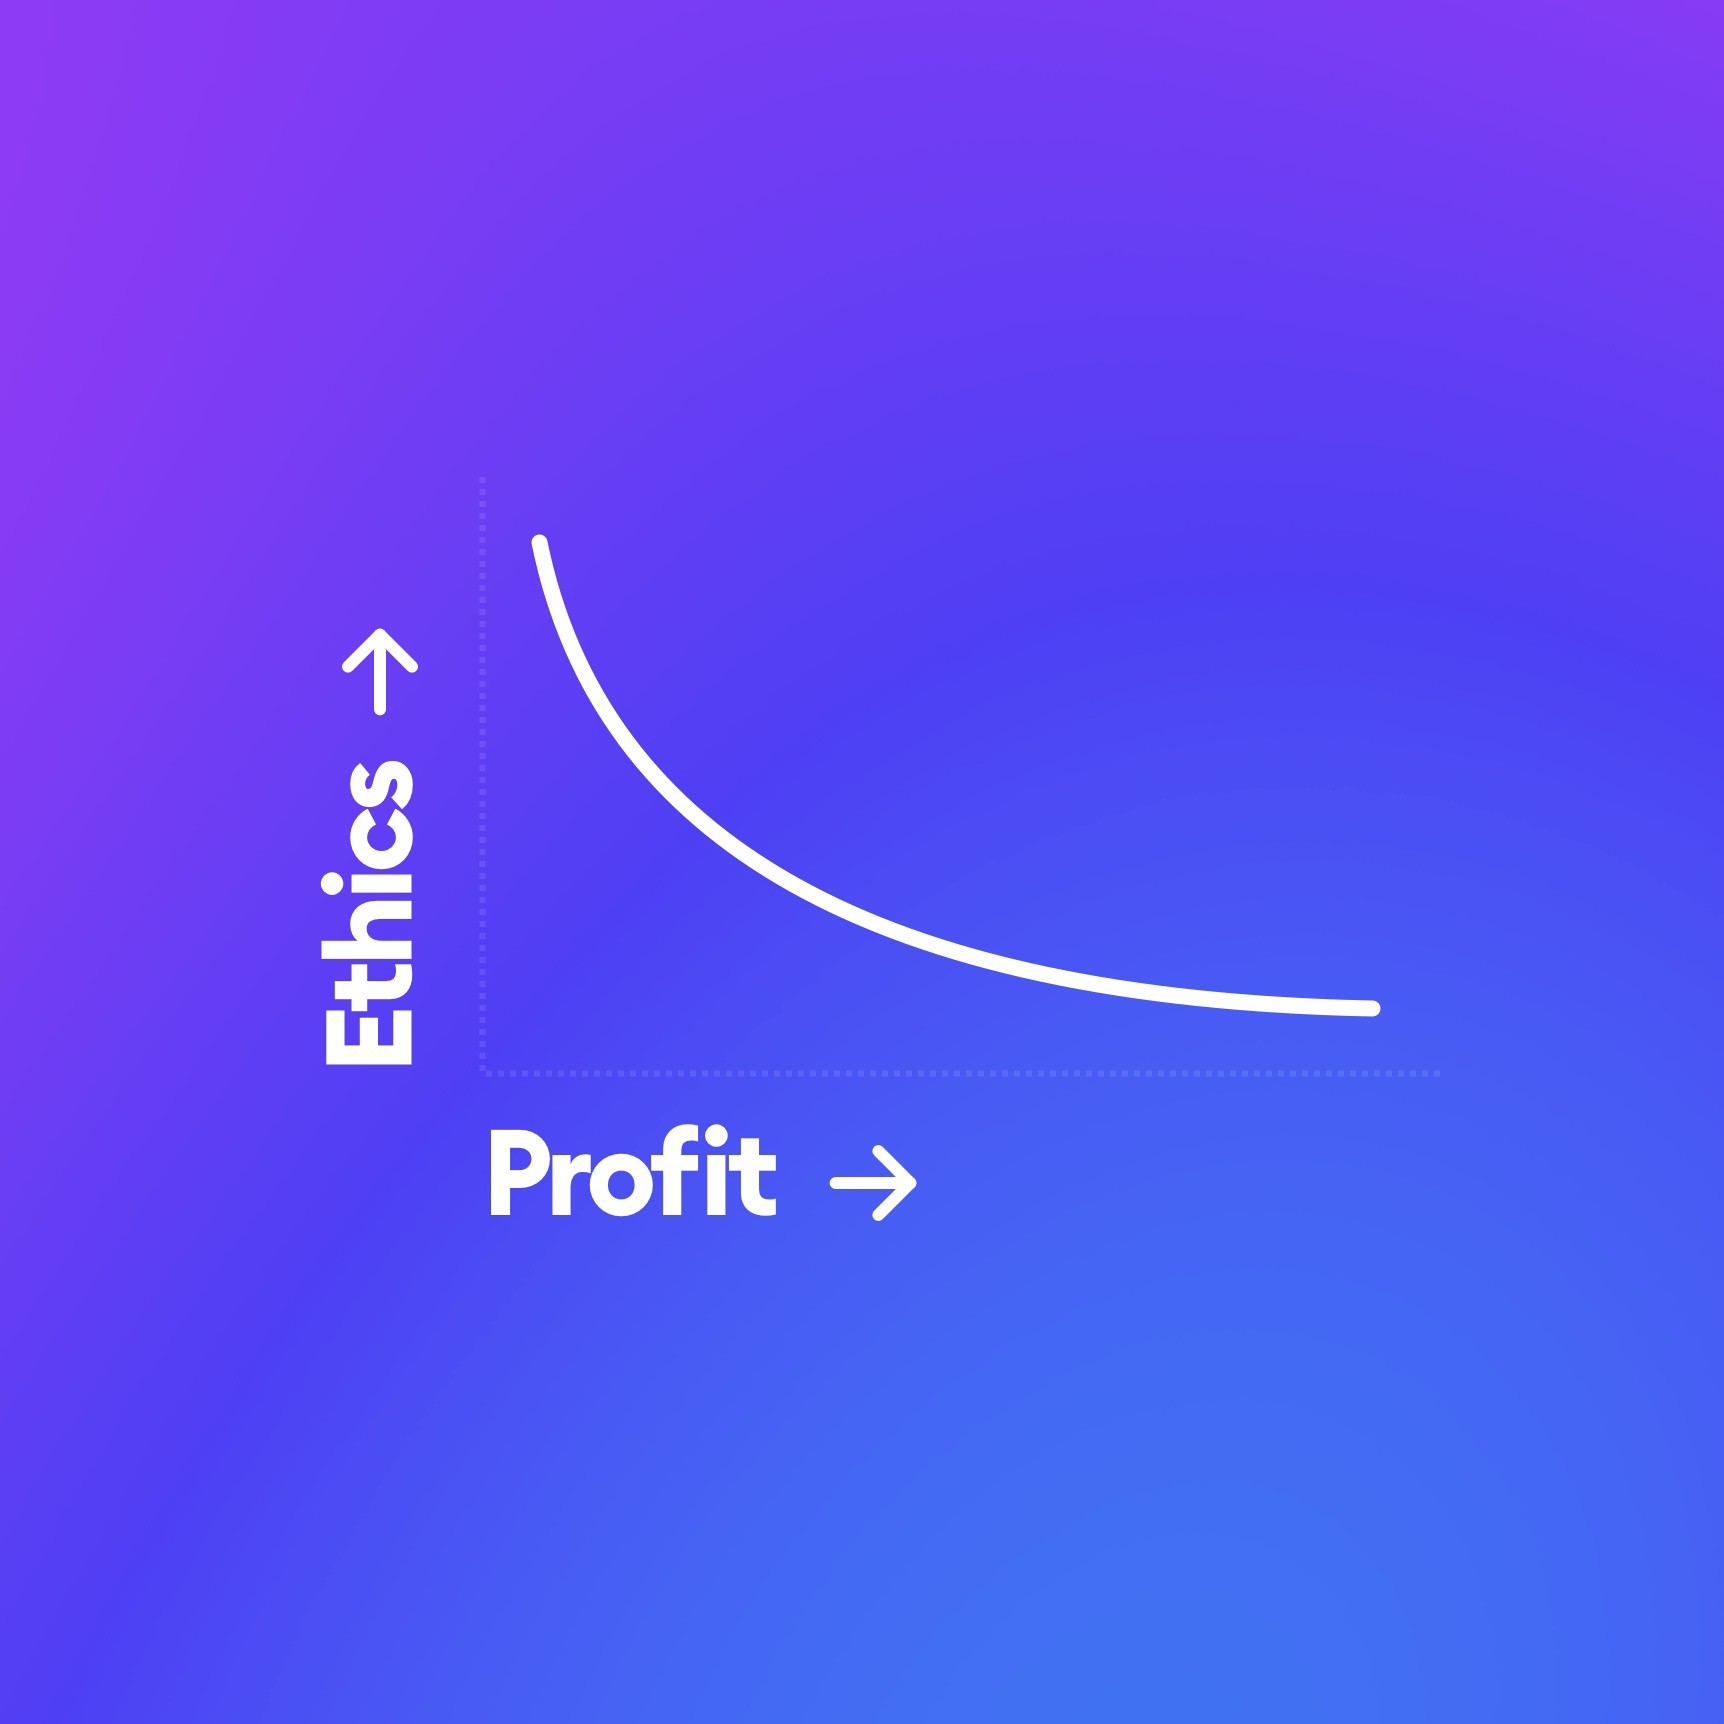 Square 5 — ethics vs profit. The lower the ethics the higher the profit.